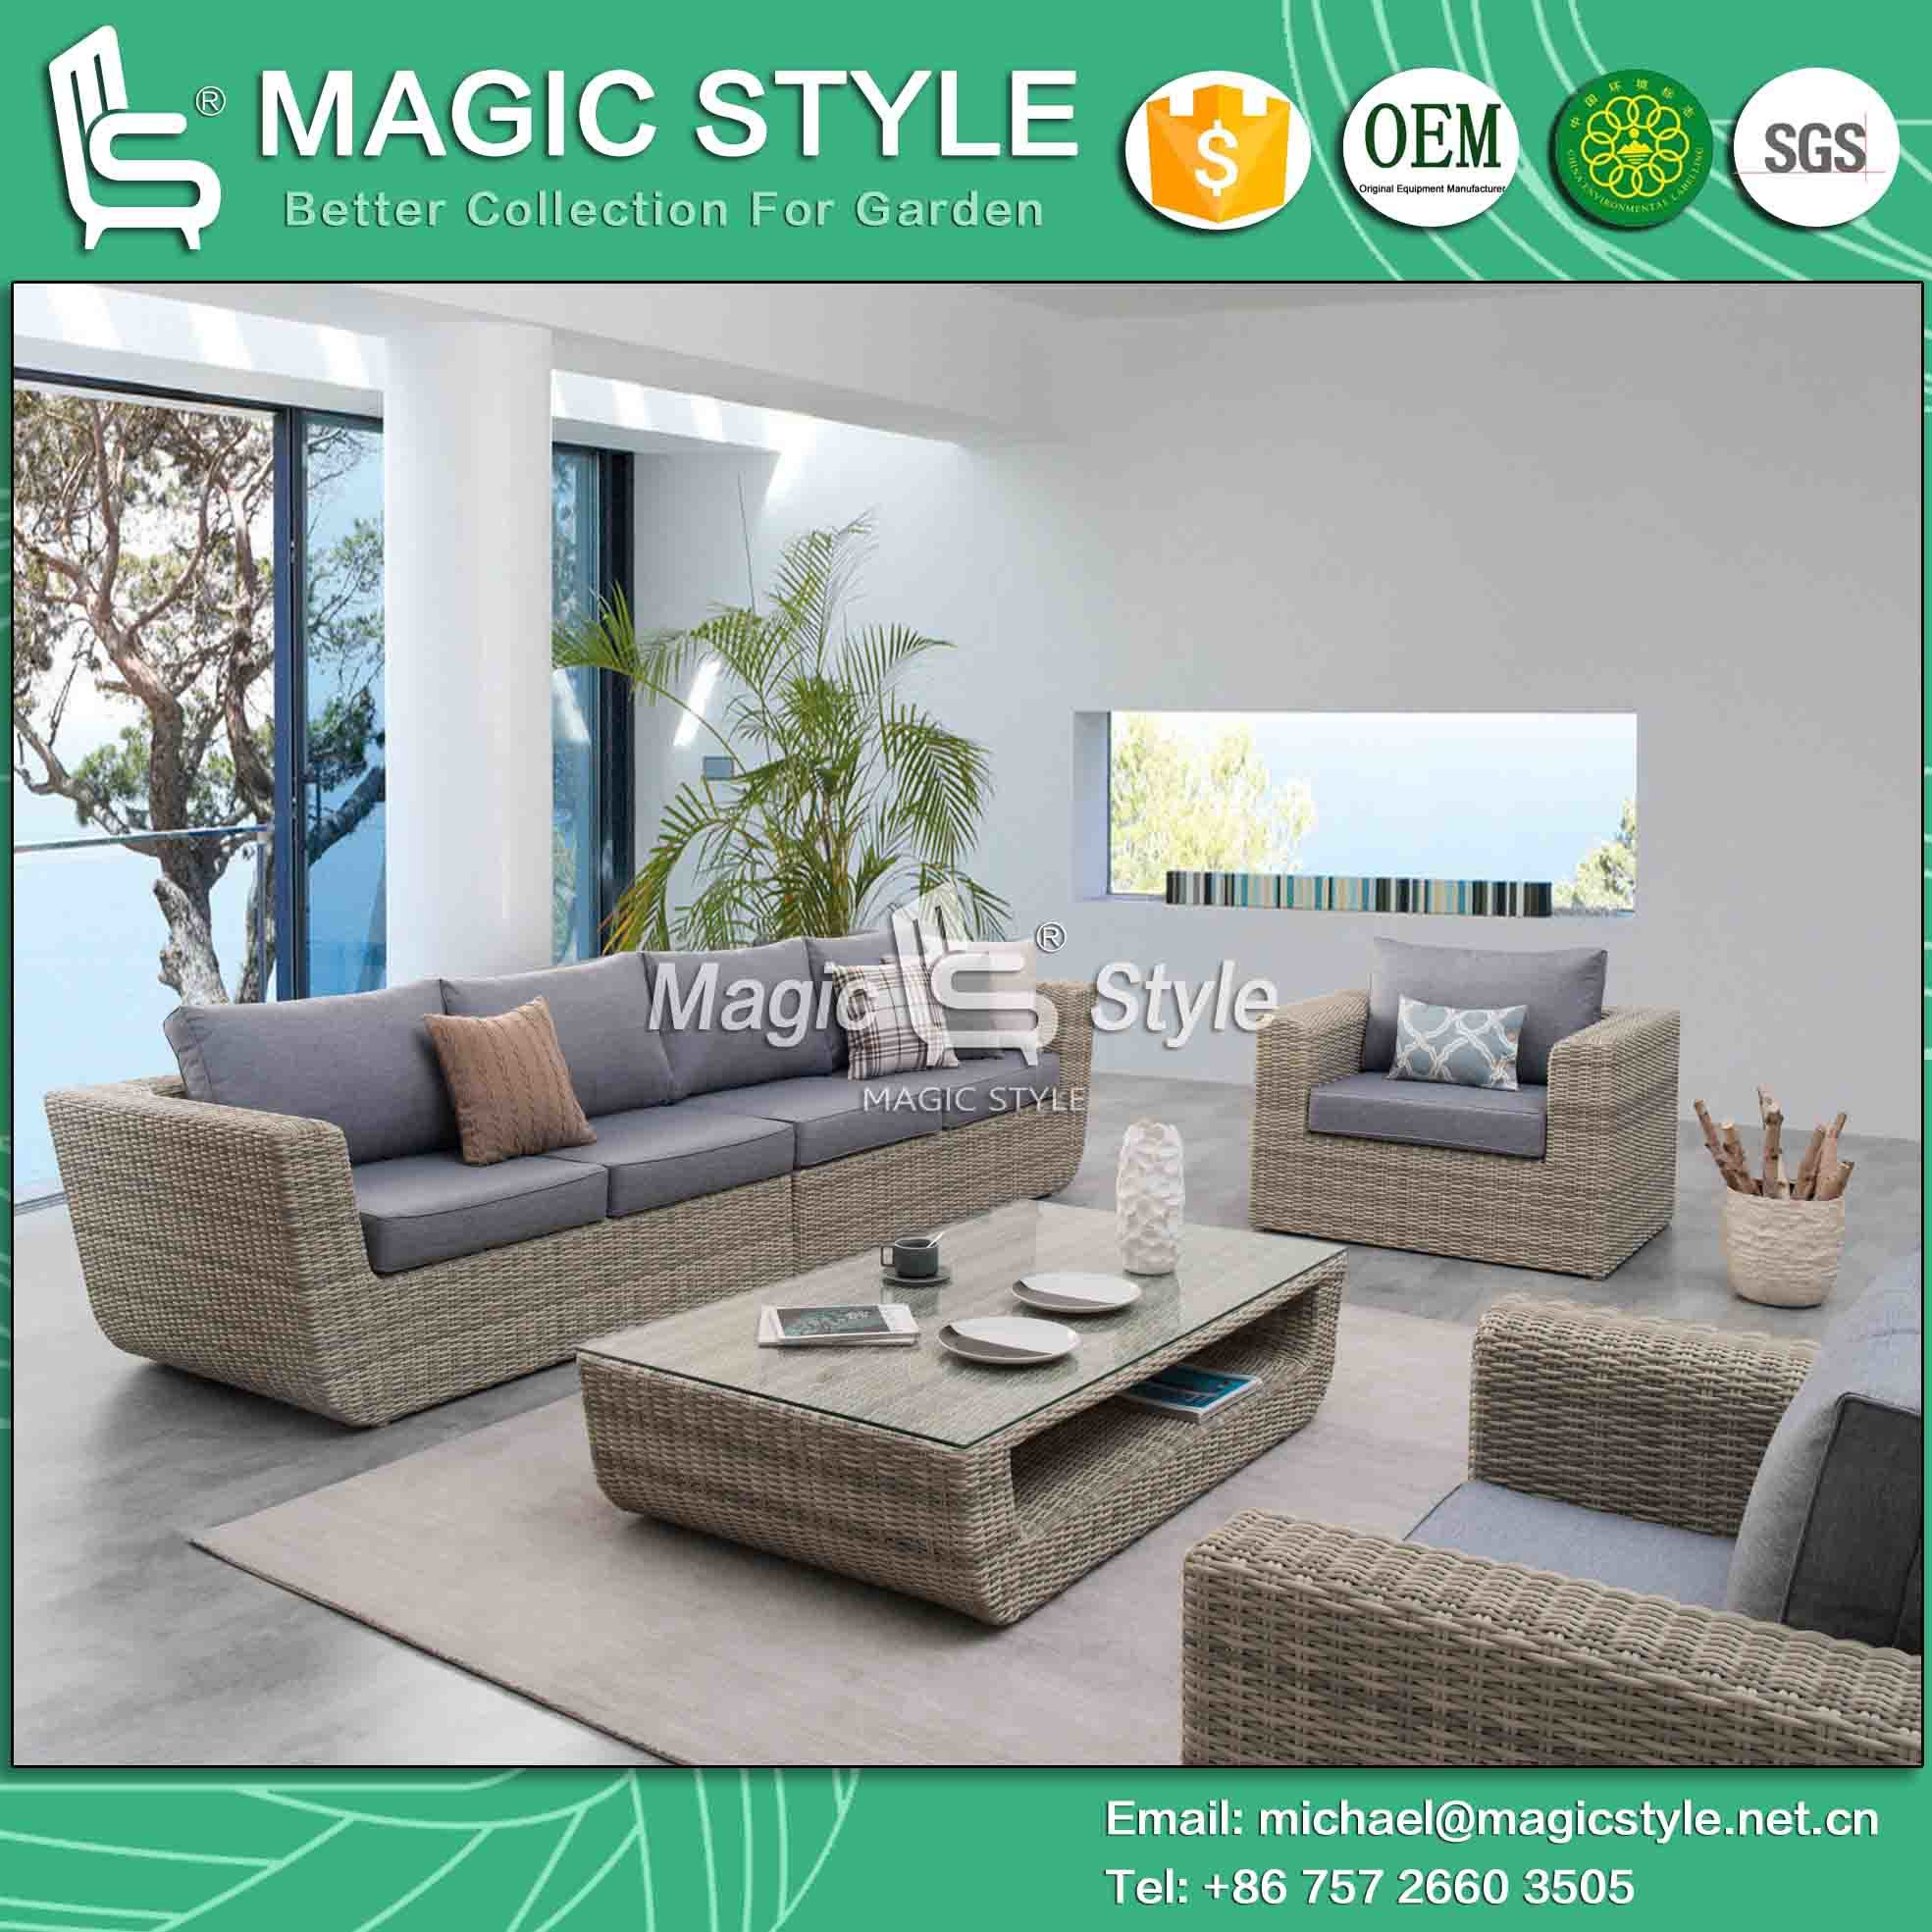 Full Size of Rattan Corner Sofa Cover Argos Cushions Outdoor For Sale Davao Furniture Singapore Joo Chiat Bed Table Glass Set Replacements Indoor Schweiz Uk Sets China Sofa Rattan Sofa